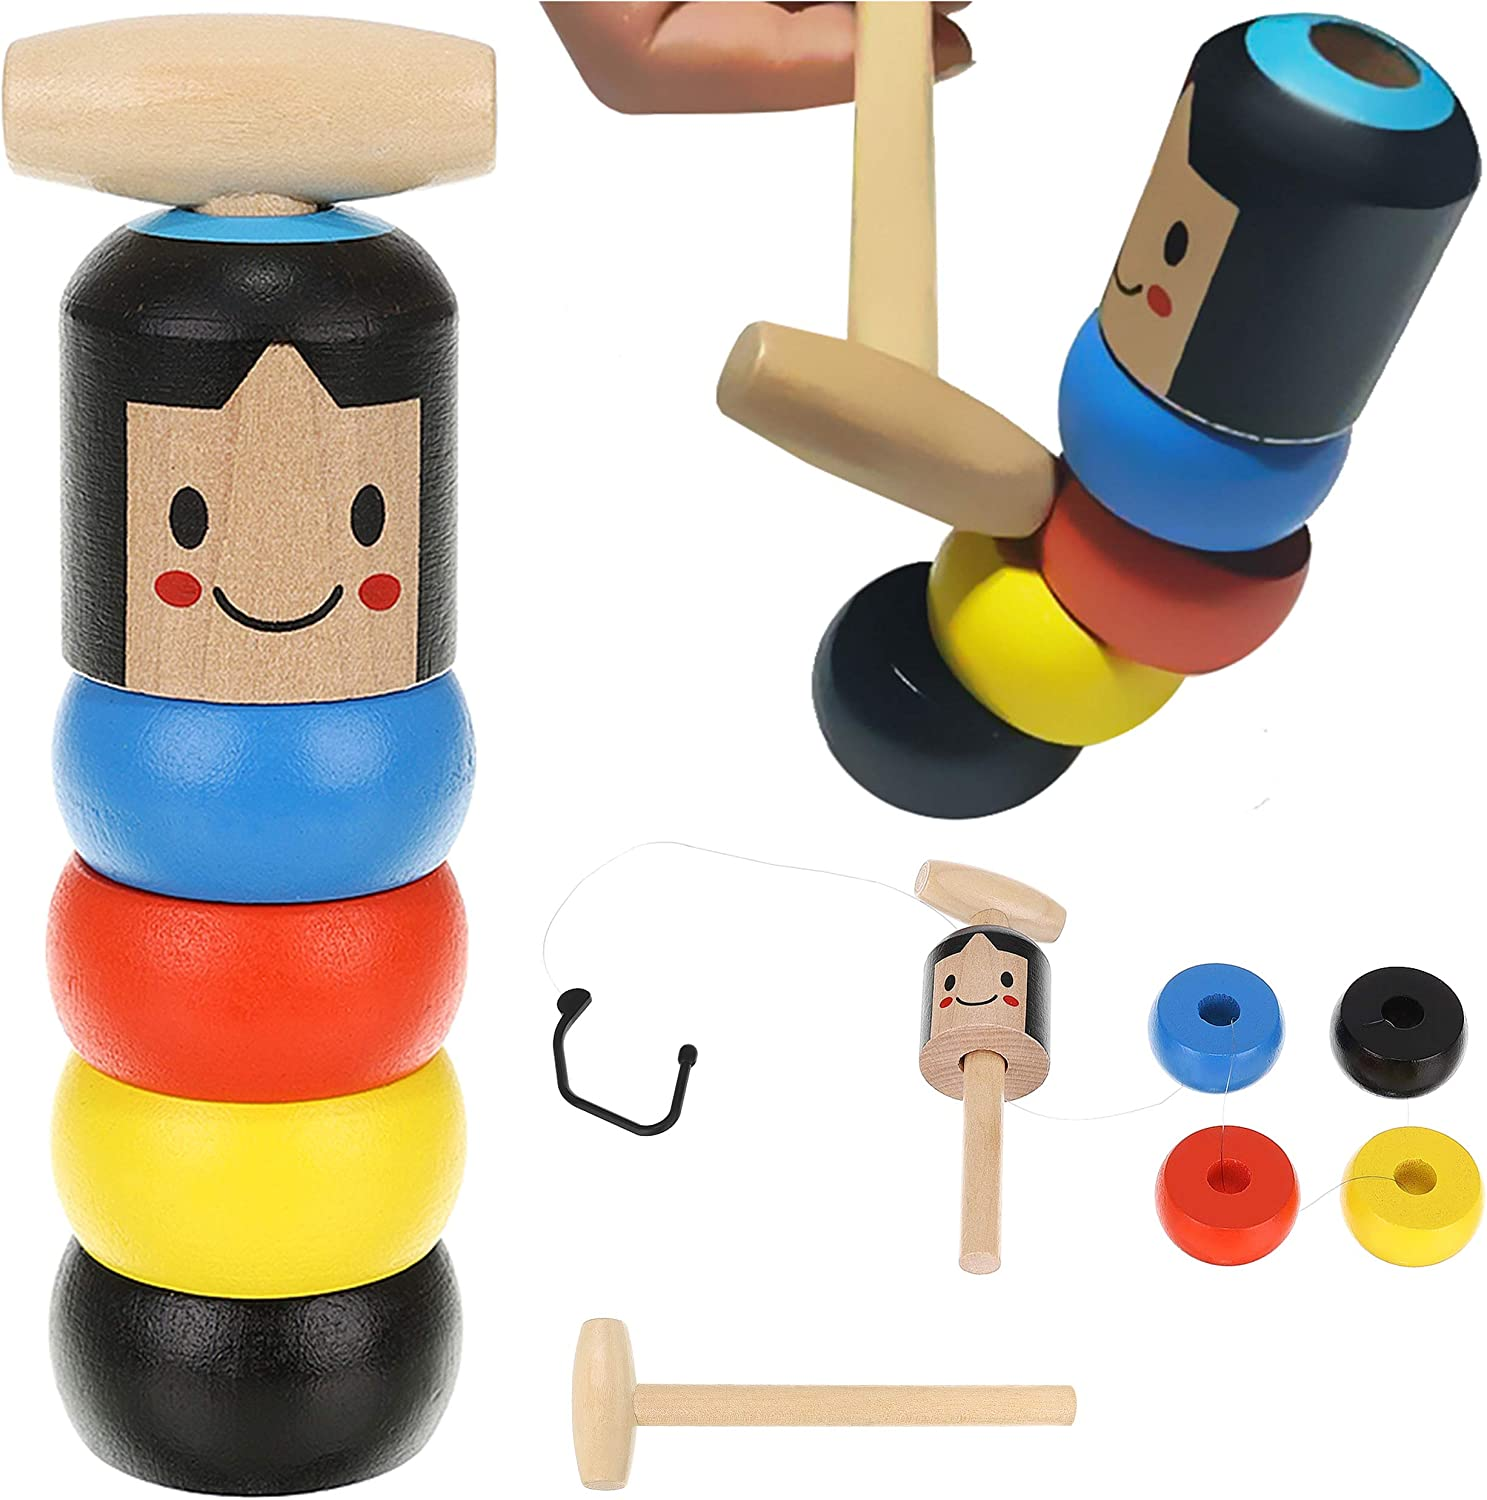 ISO TRADE Unbreakable Wooden man Wooden Toys funny wooden toys for children and adults 9991